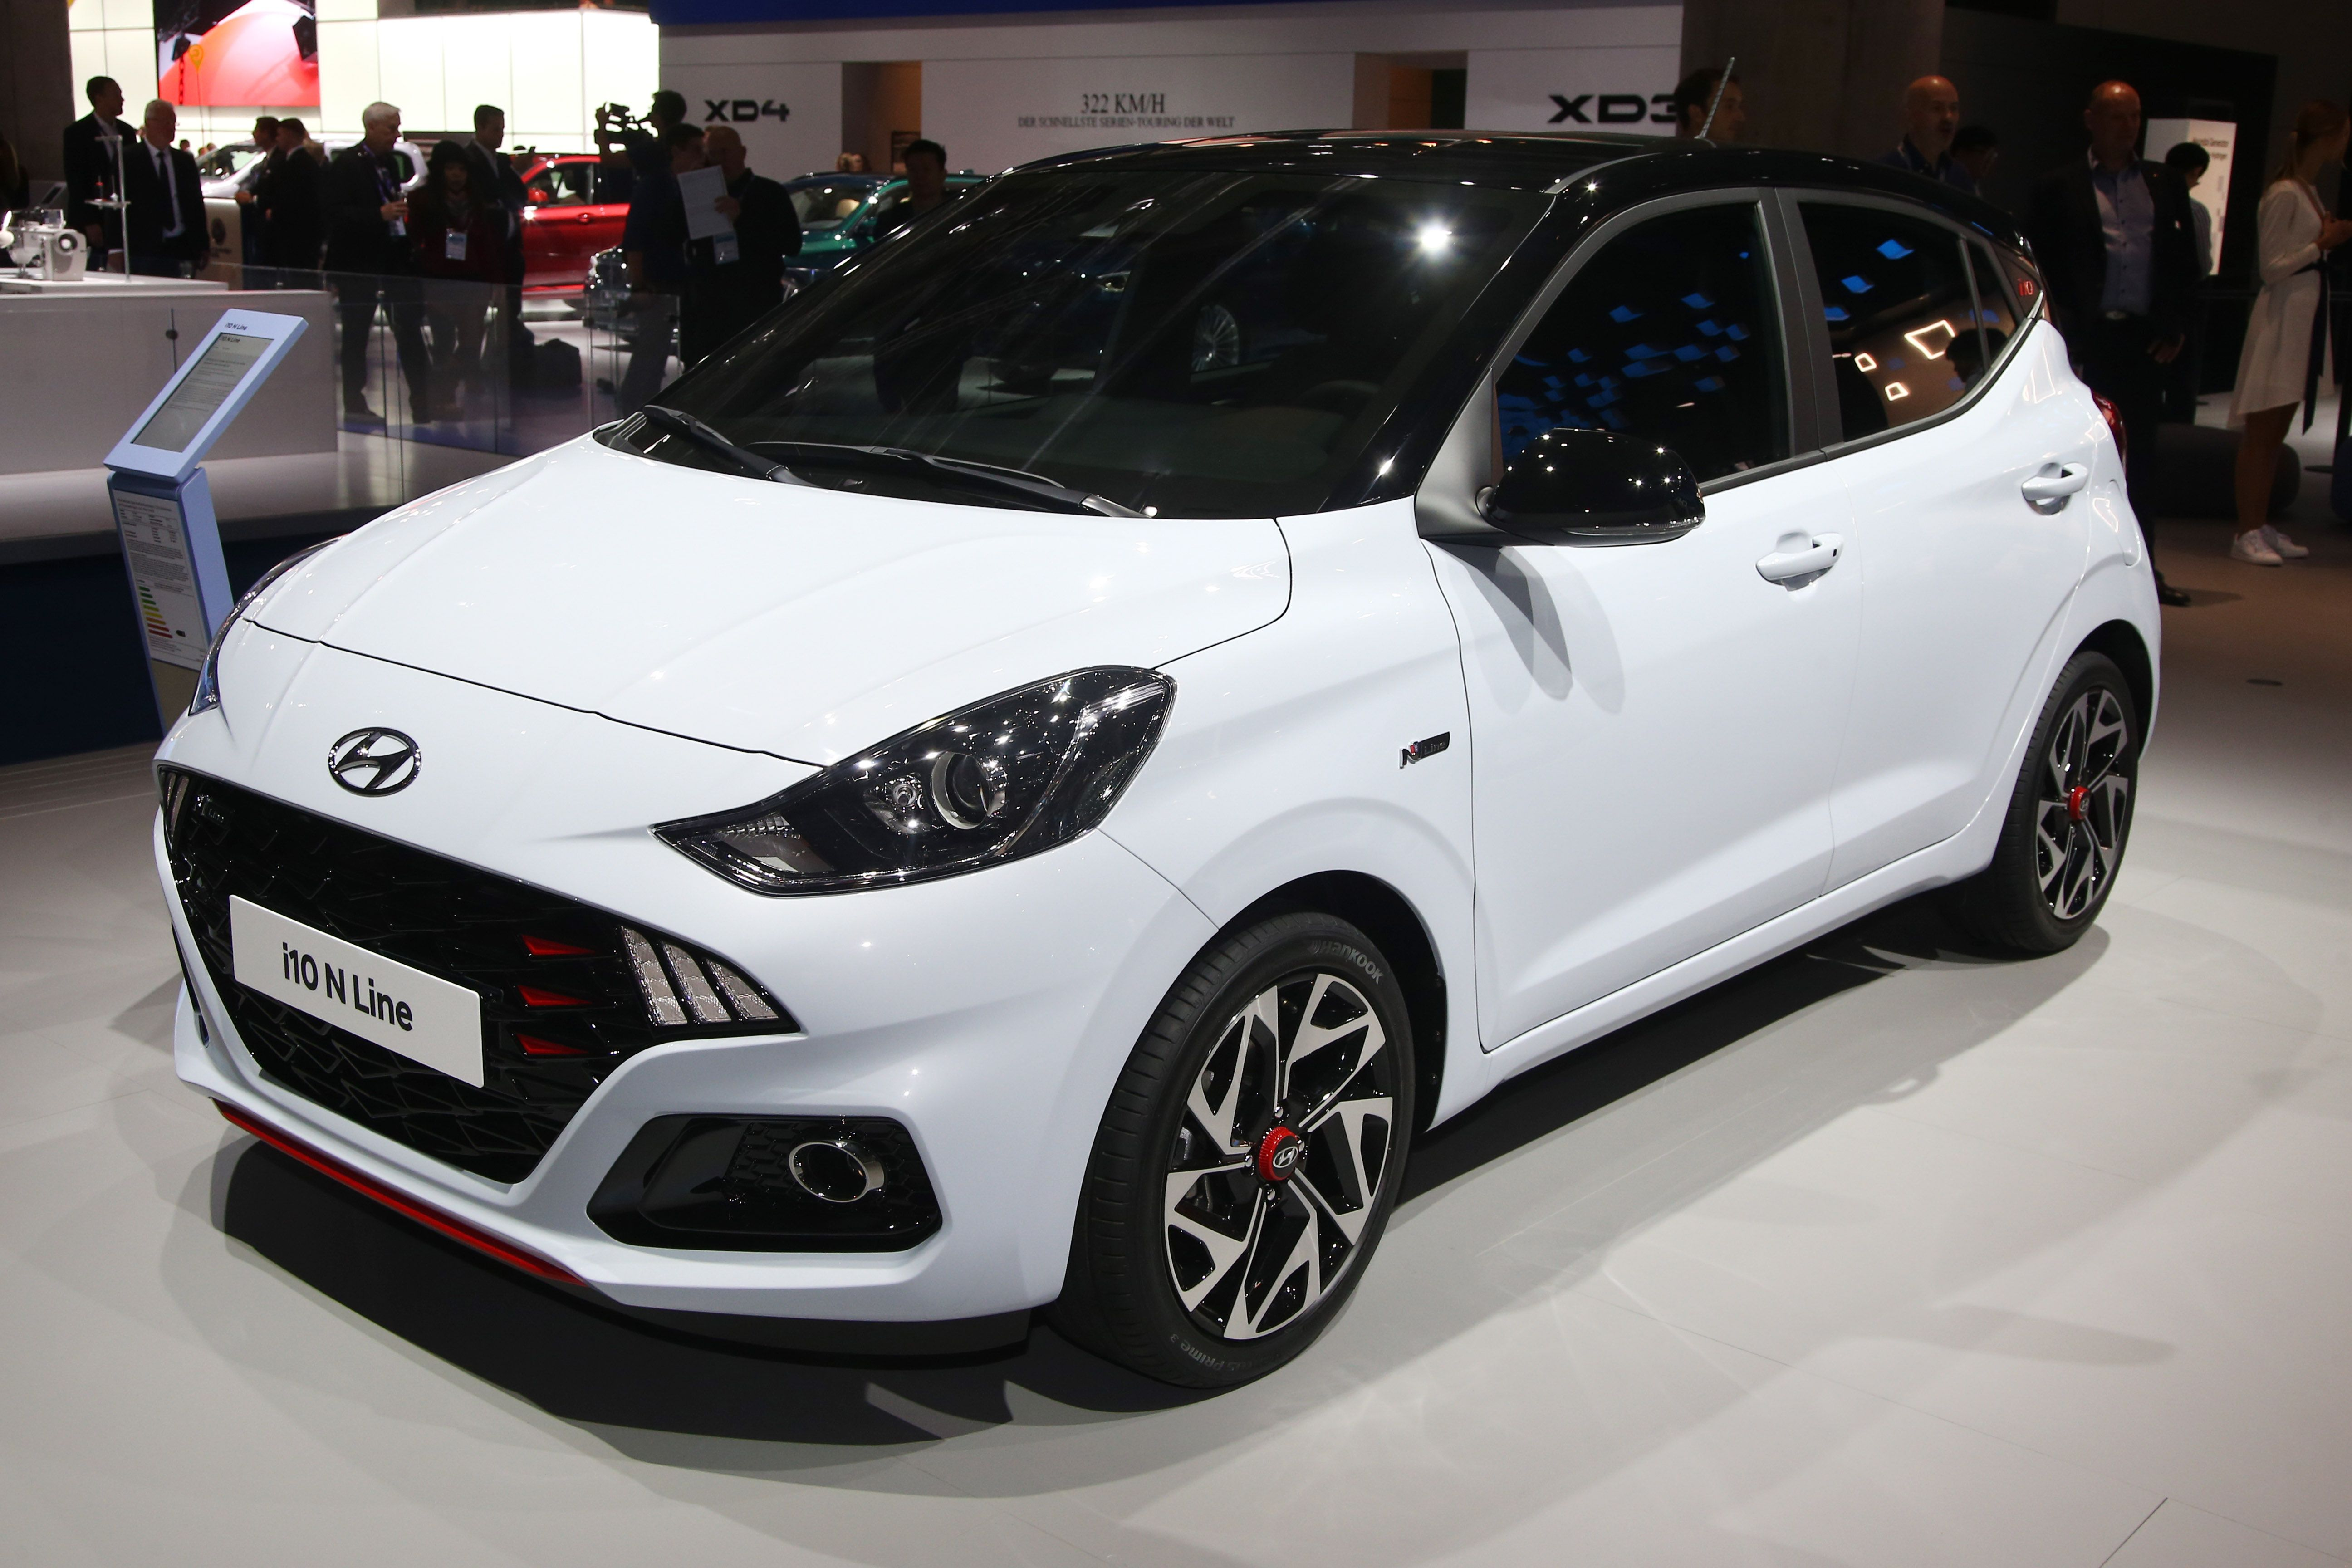 2020 Hyundai I10 N Line Raising The Bar Or Setting Low Standards